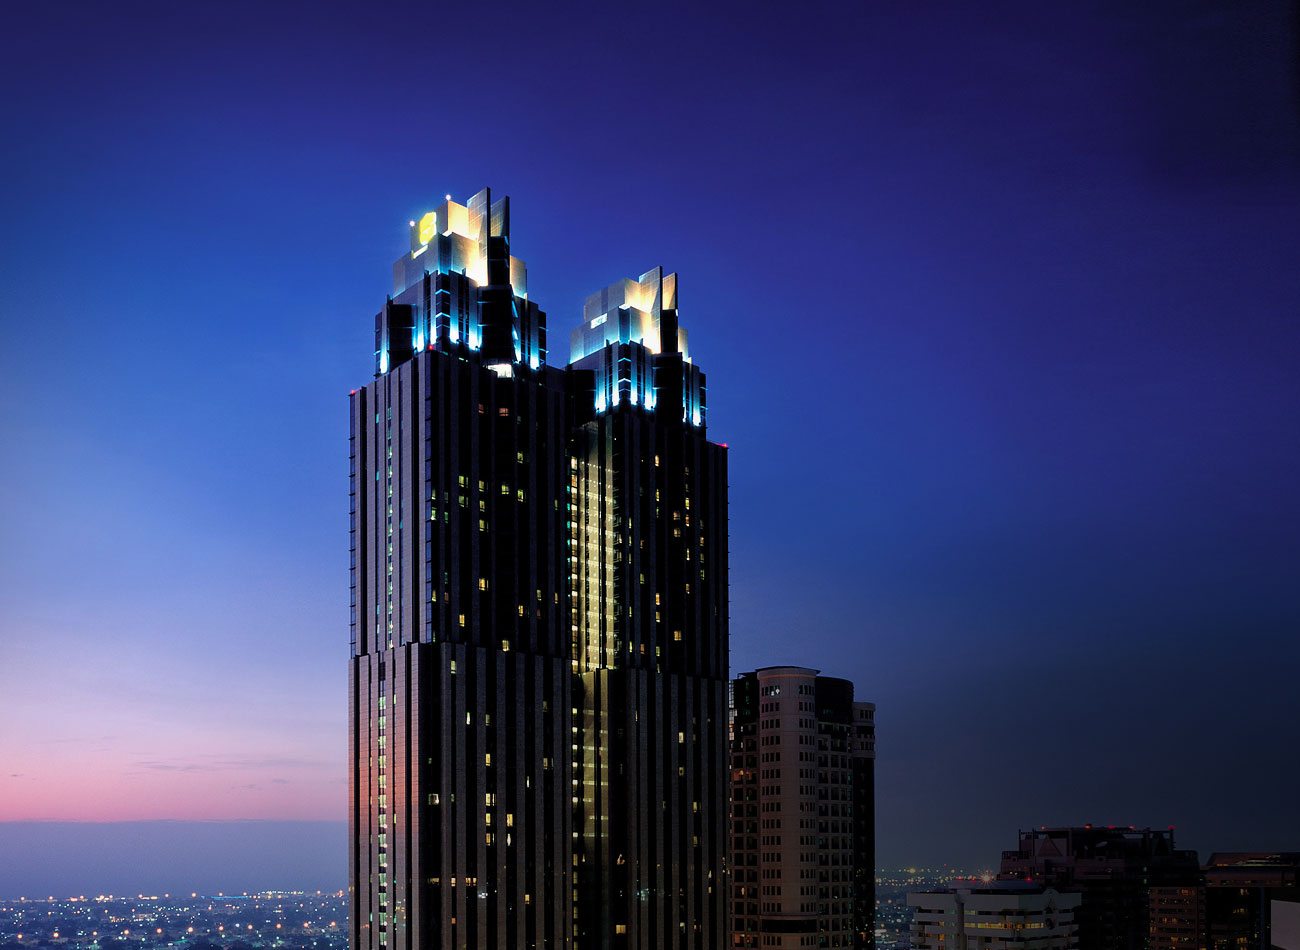 Best hotels in dubai top 10 page 8 of 10 ealuxe com for 10 best hotels in dubai